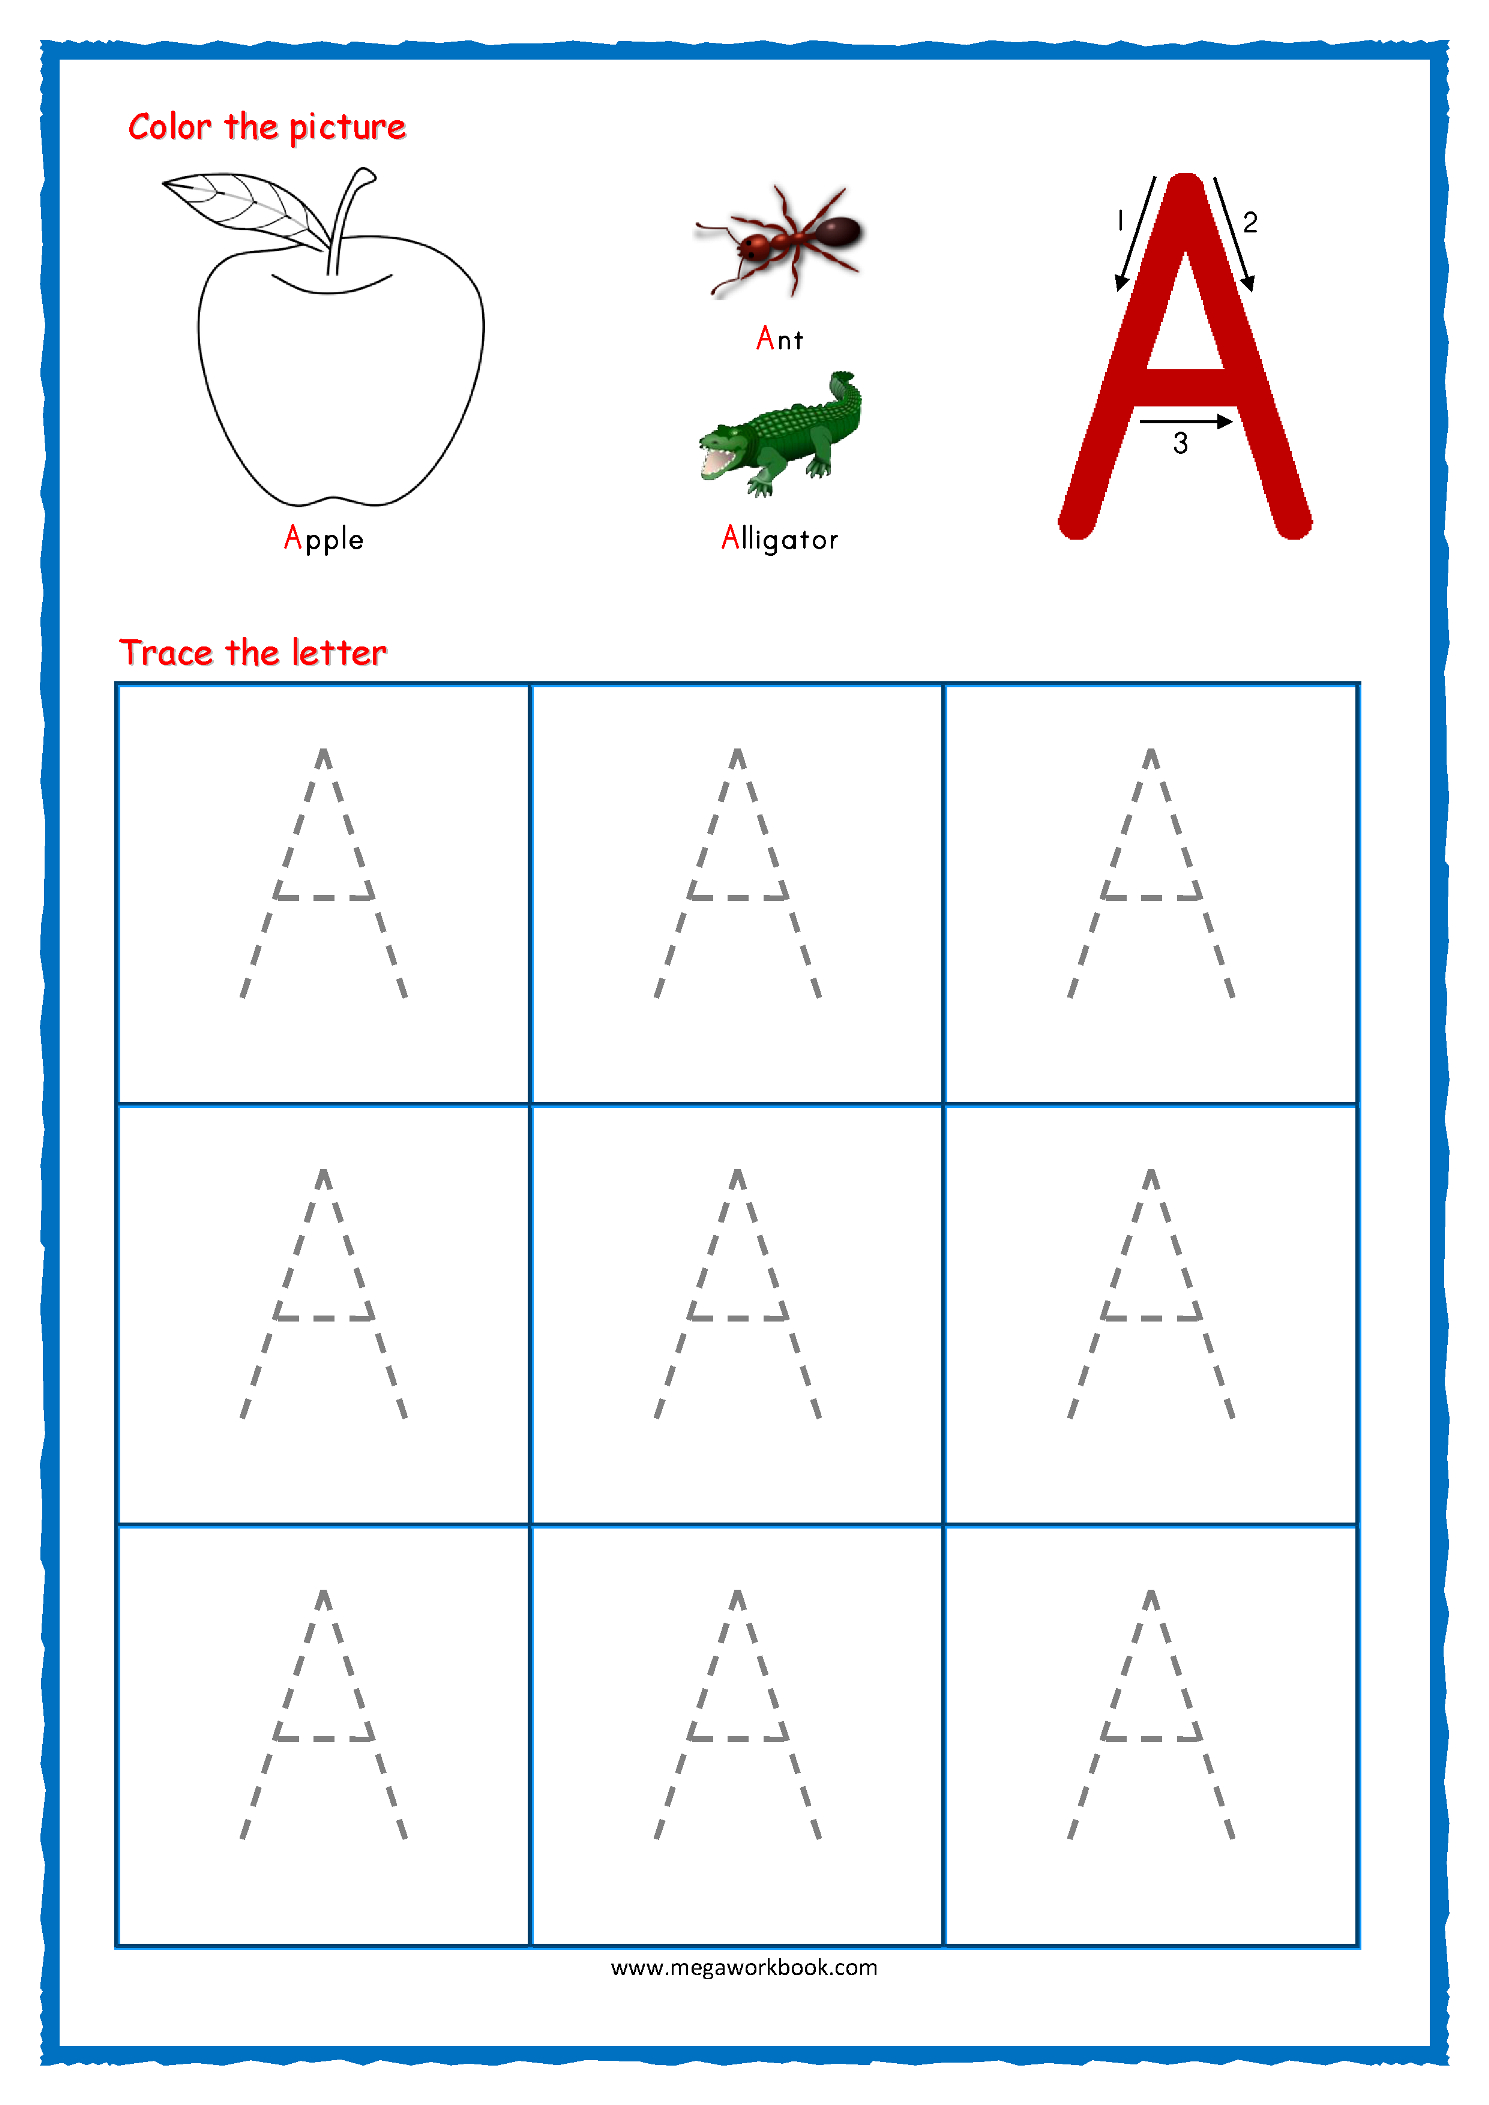 Tracing Letters - Alphabet Tracing - Capital Letters regarding Alphabet Tracing Exercises